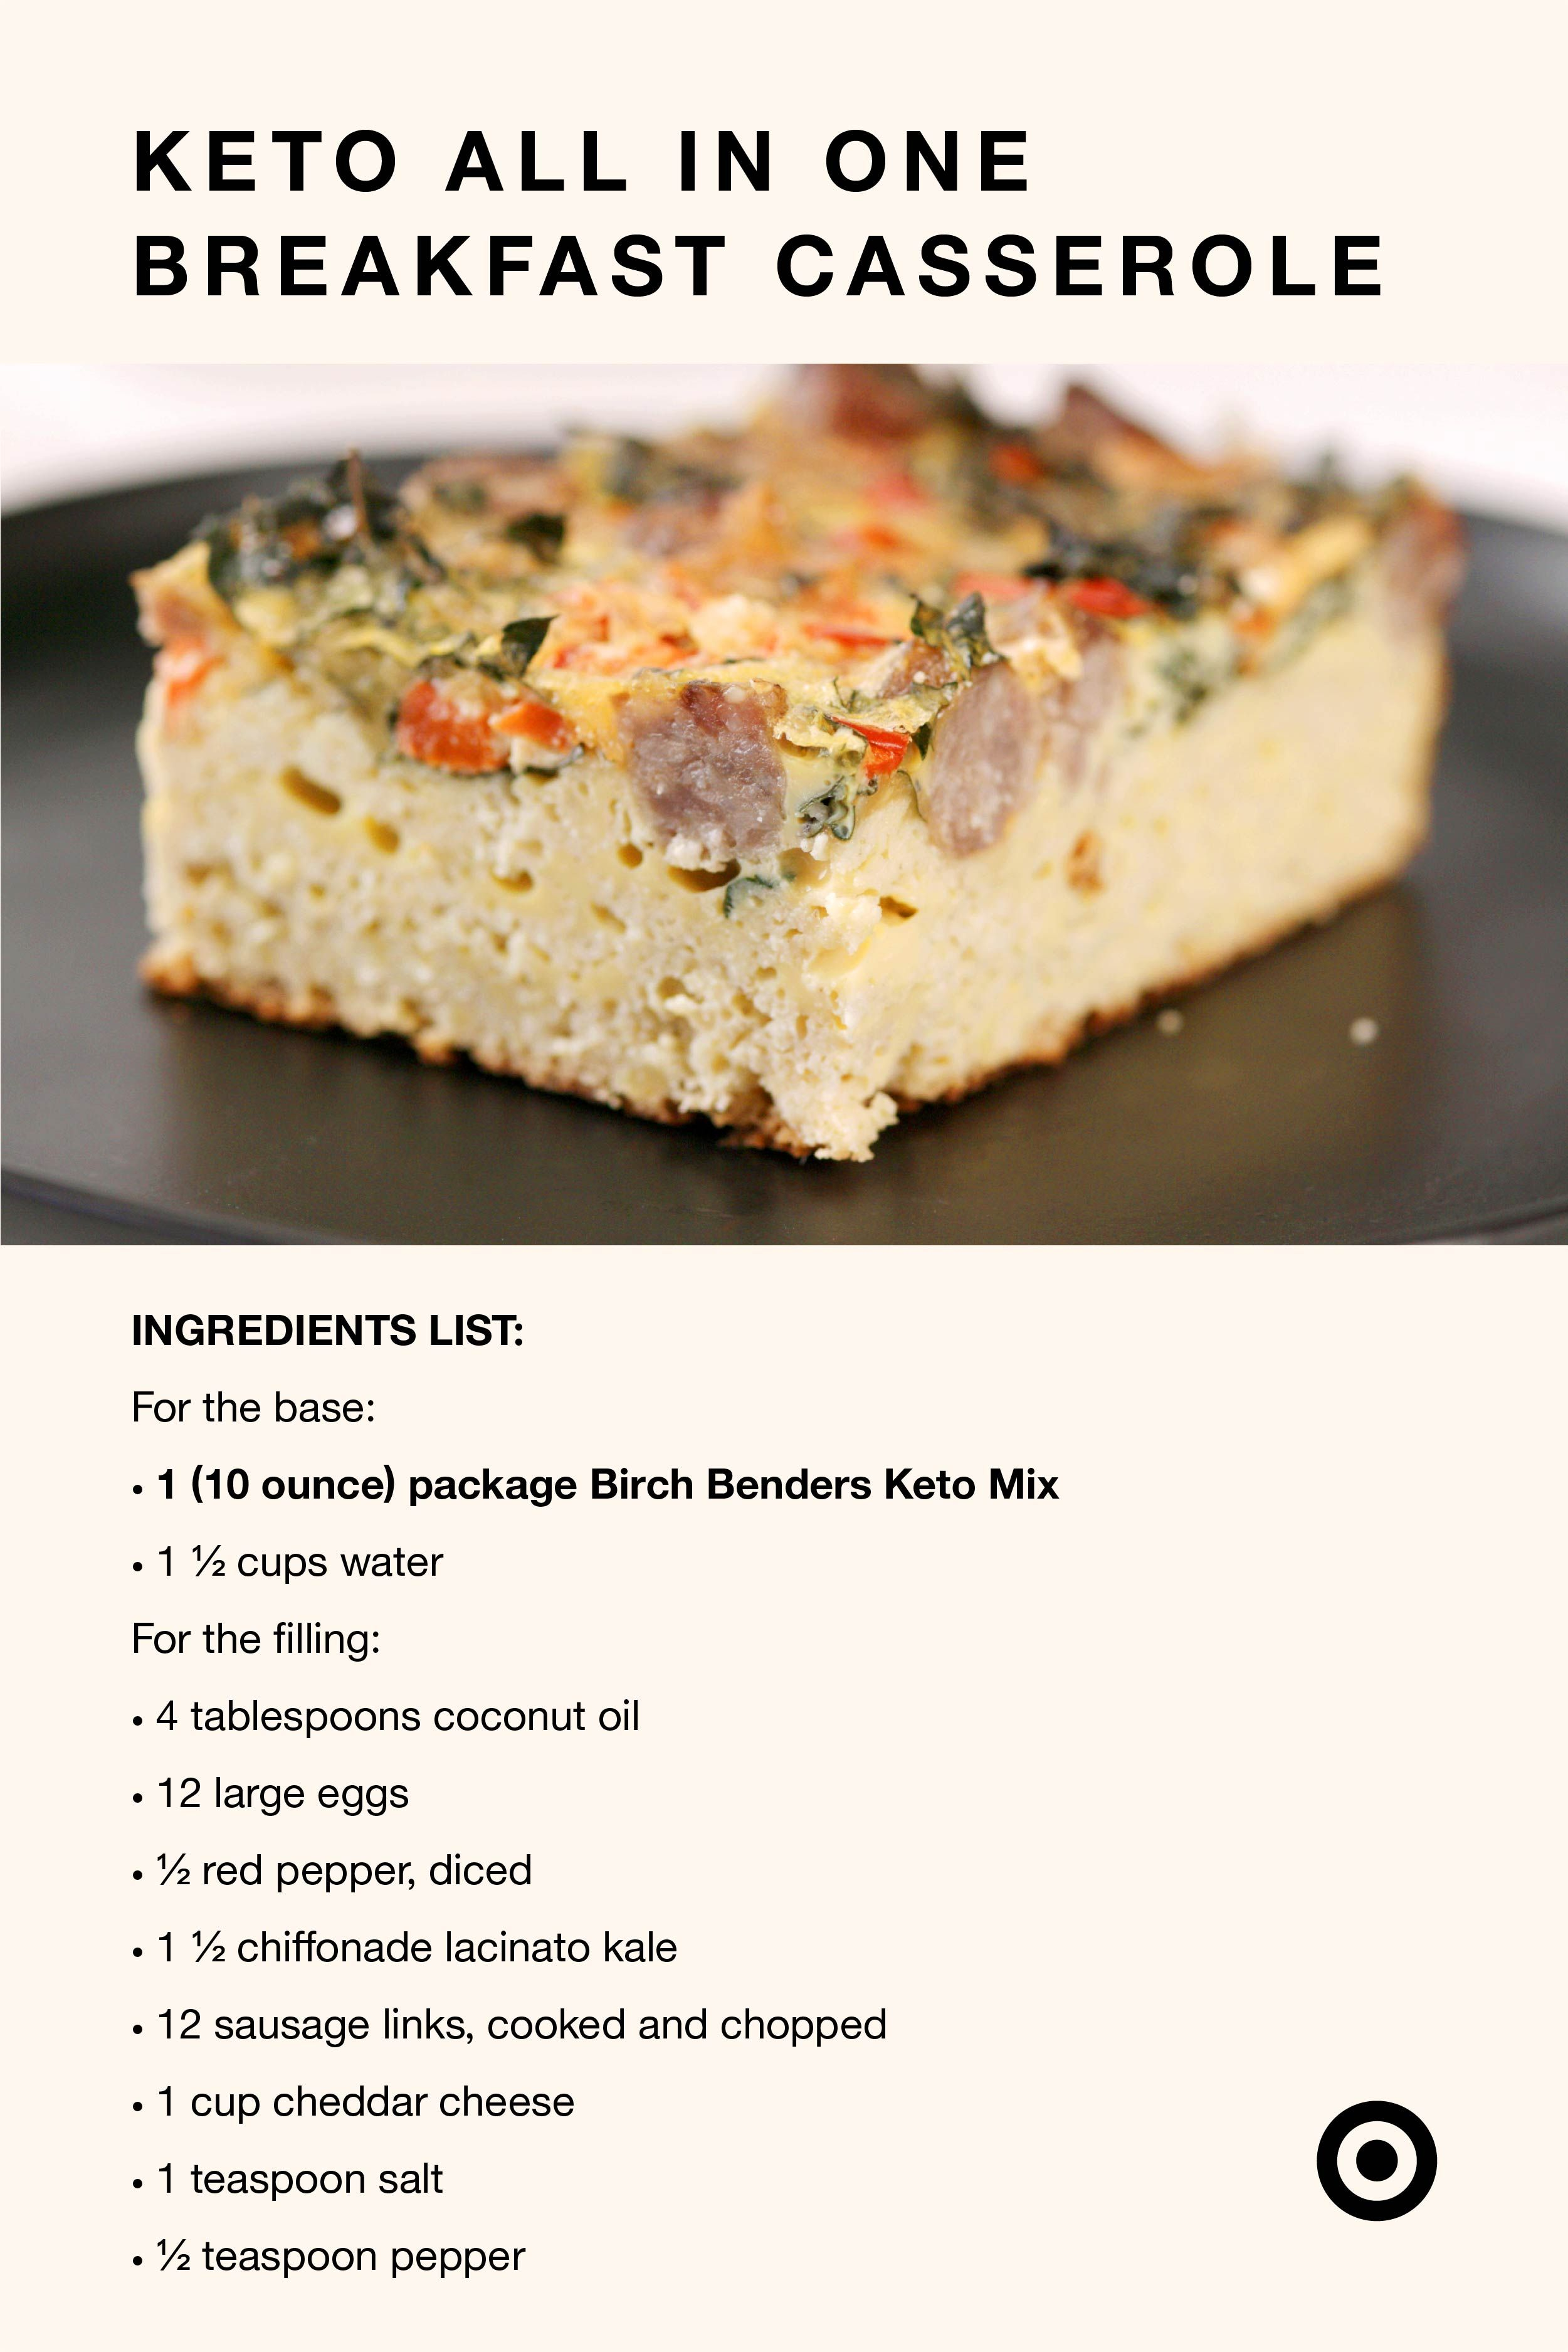 Get what you need to make this keto breakfast casserole at